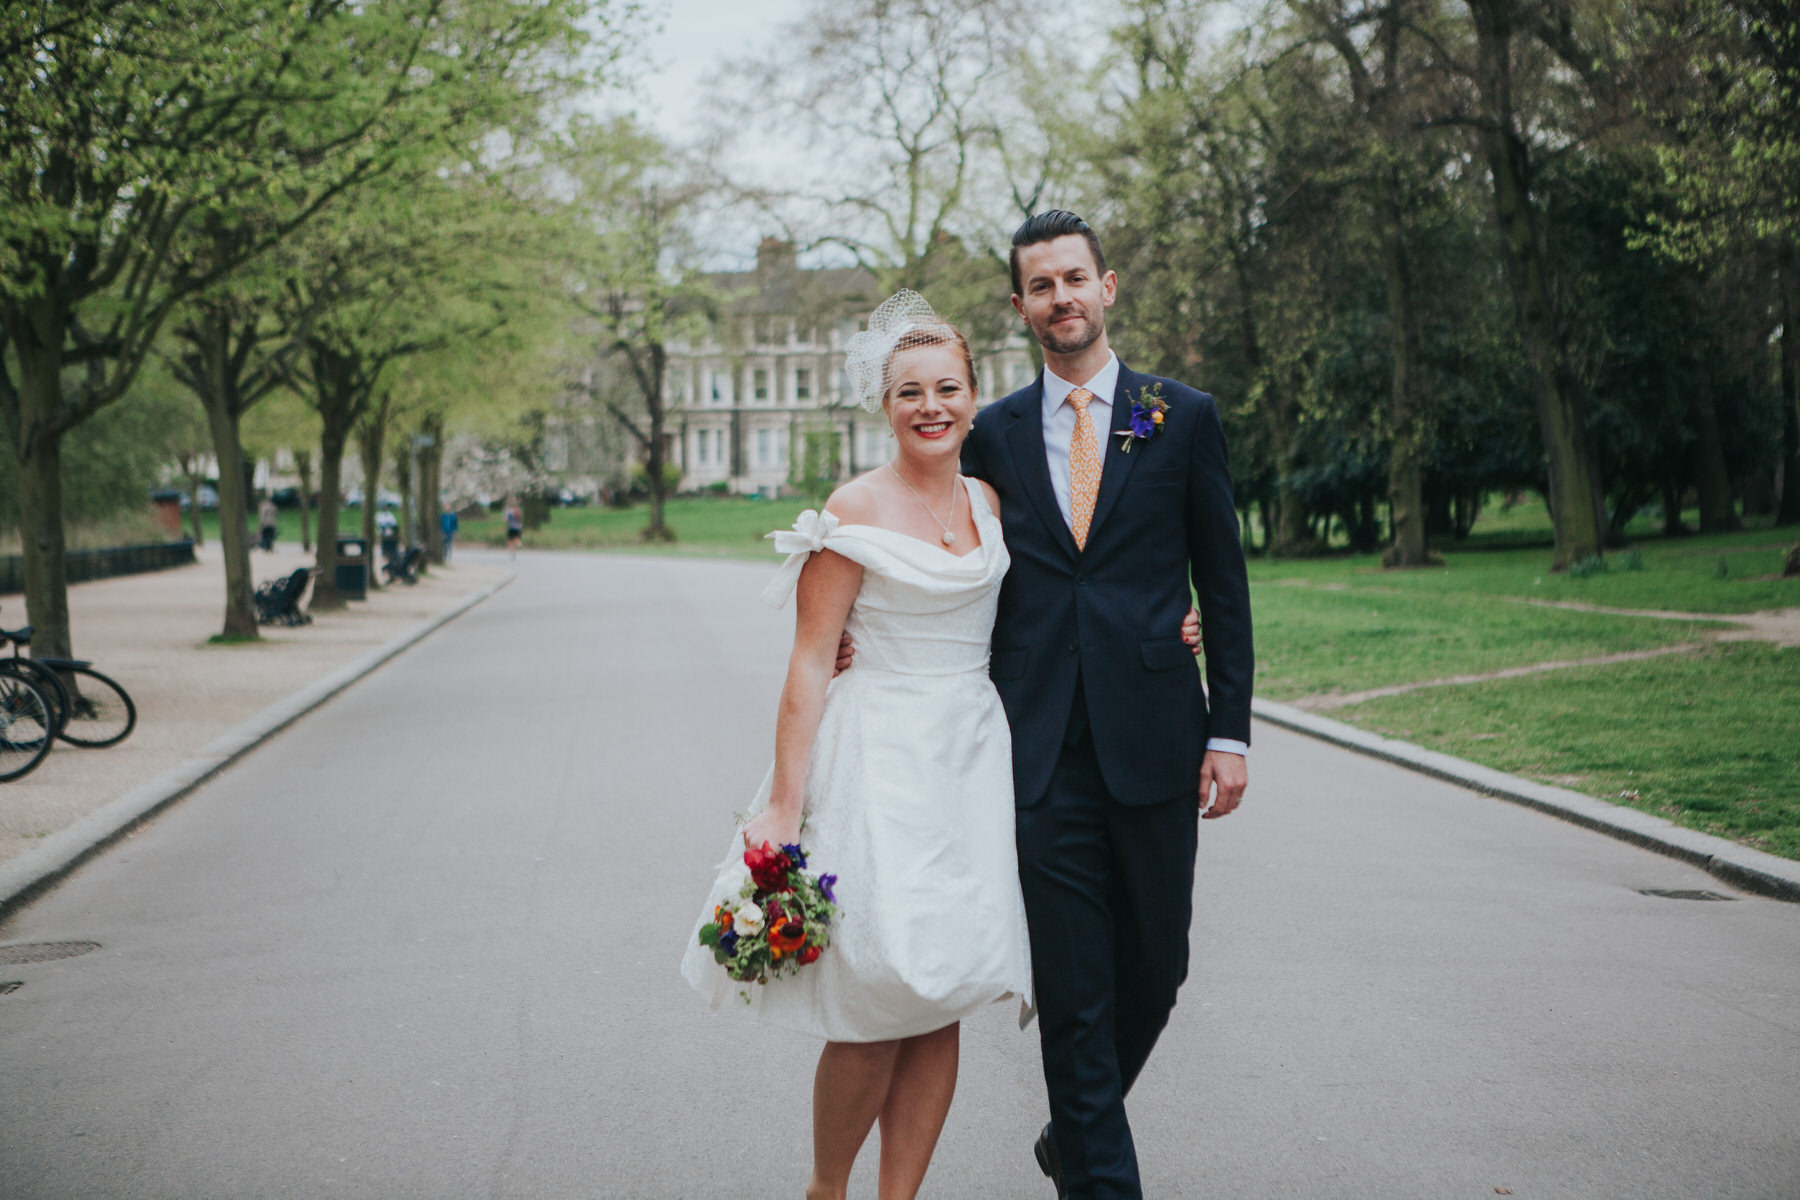 174-Hackney-alternative-wedding-couple-walking-park.jpg